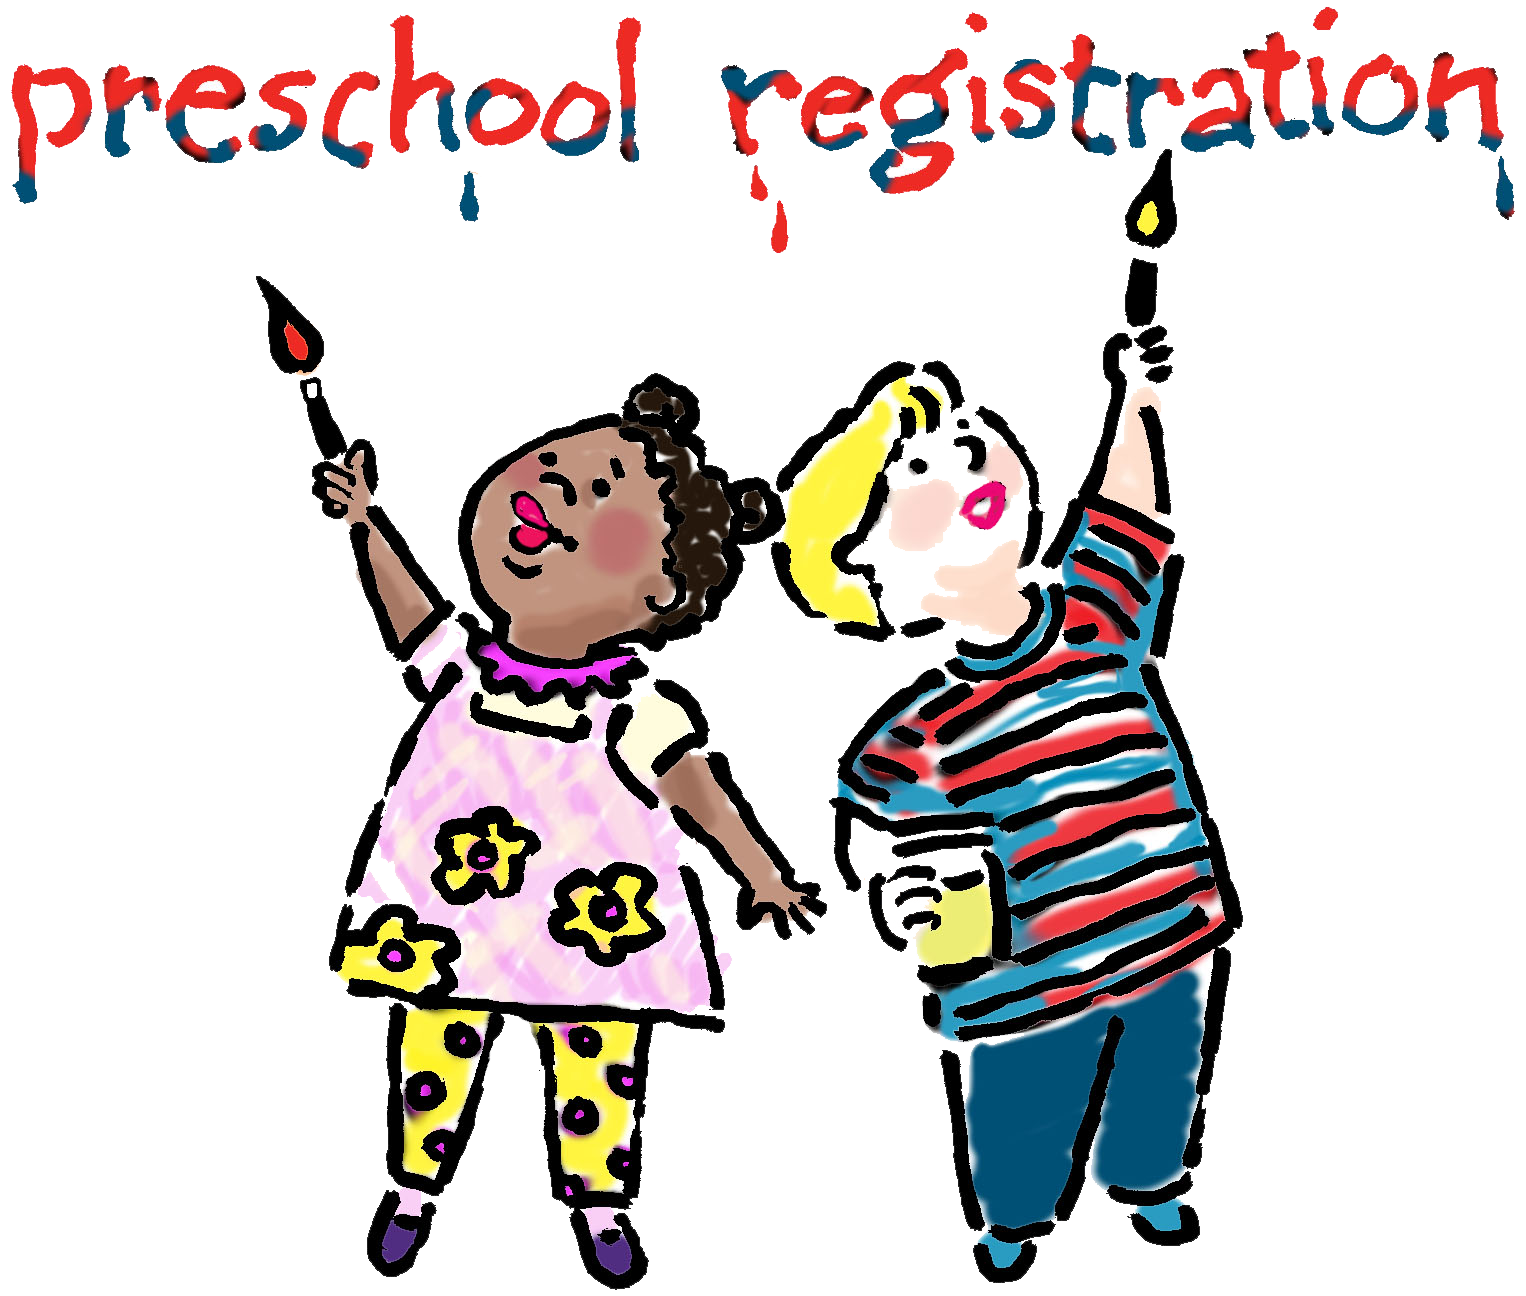 Preschool clipart. Registration